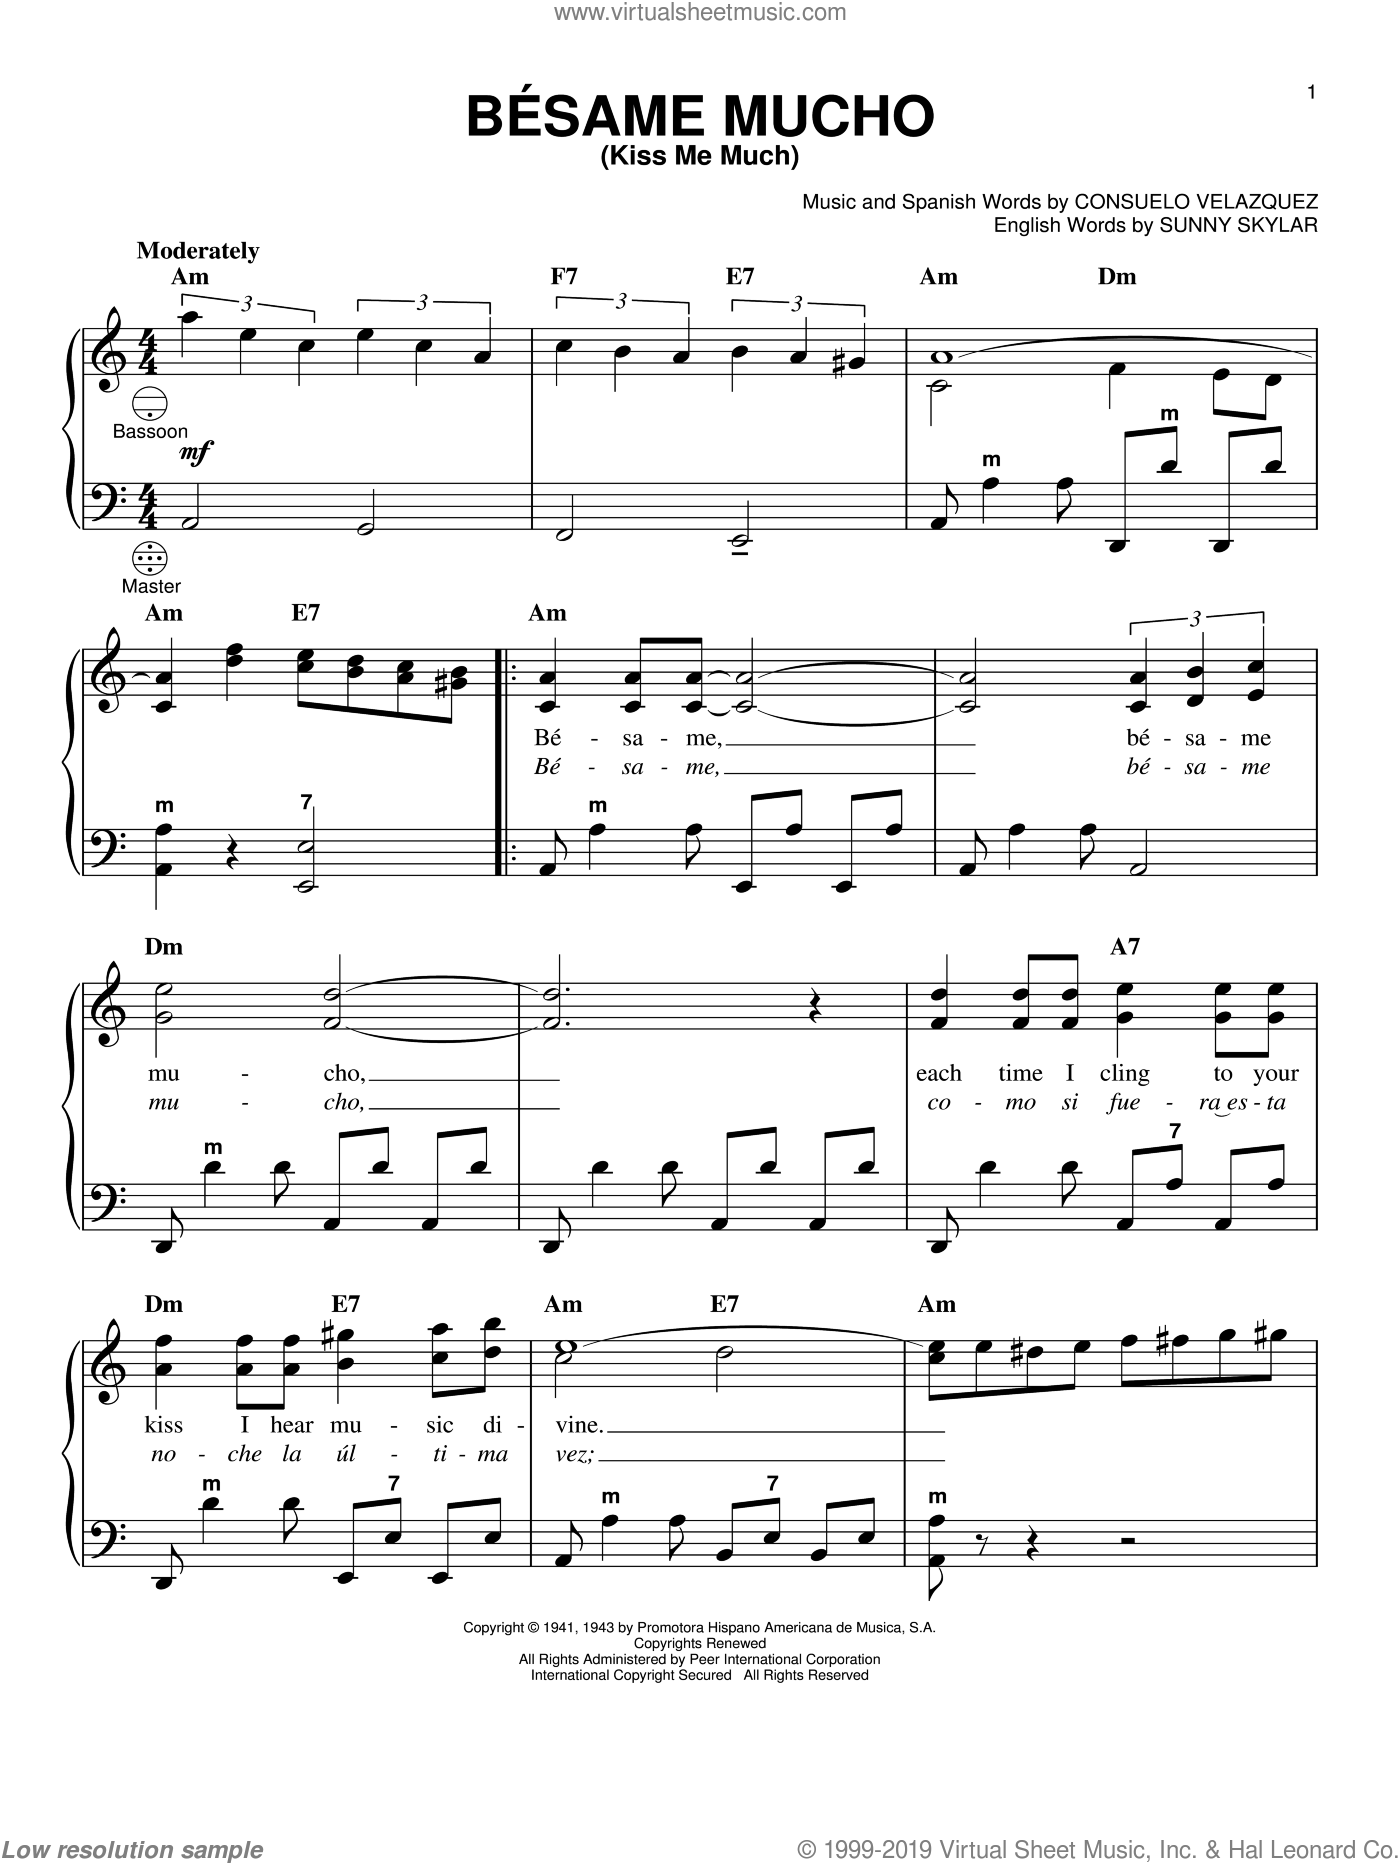 Besame Mucho (Kiss Me Much) sheet music for accordion by Sunny Skylar, Gary Meisner and Consuelo Velazquez. Score Image Preview.